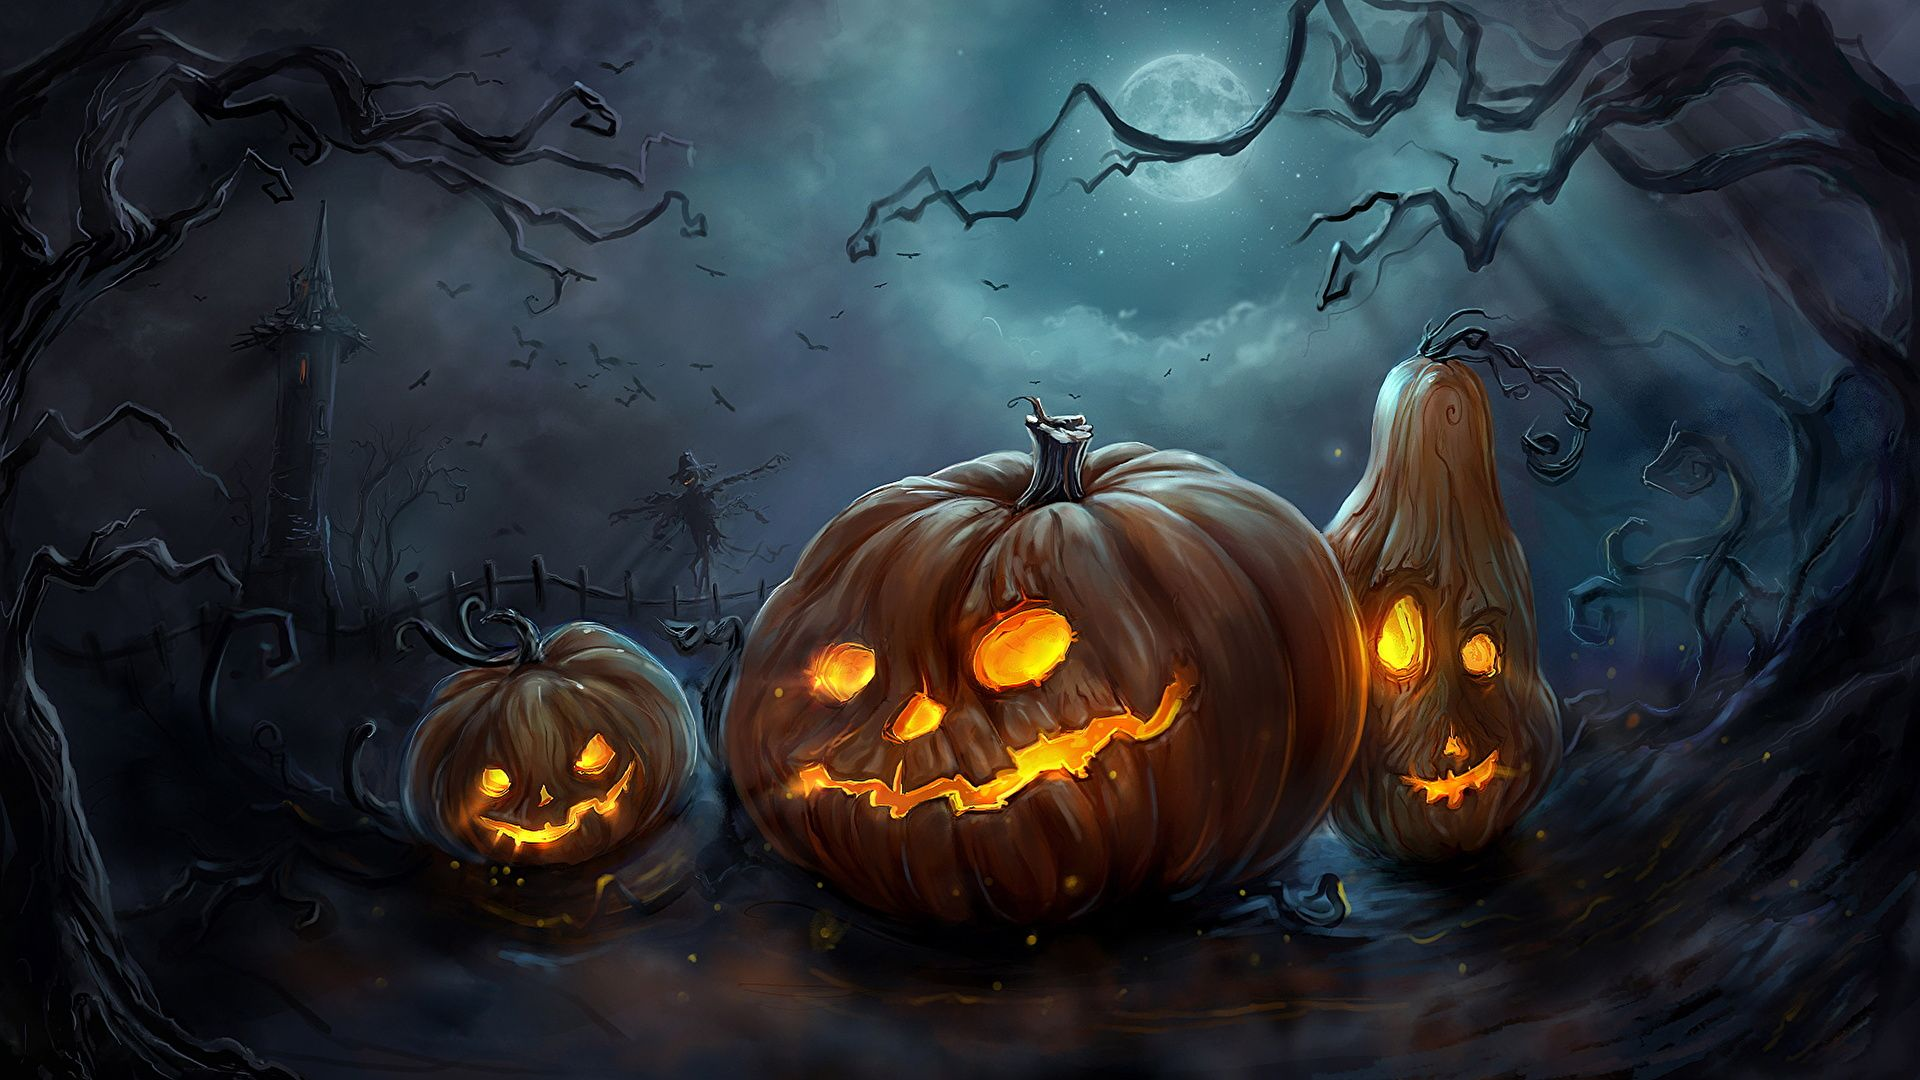 Hd Wallpaper Desktop For Halloween Best Wallpaper Hd Halloween Images Halloween Wishes Halloween Wallpaper